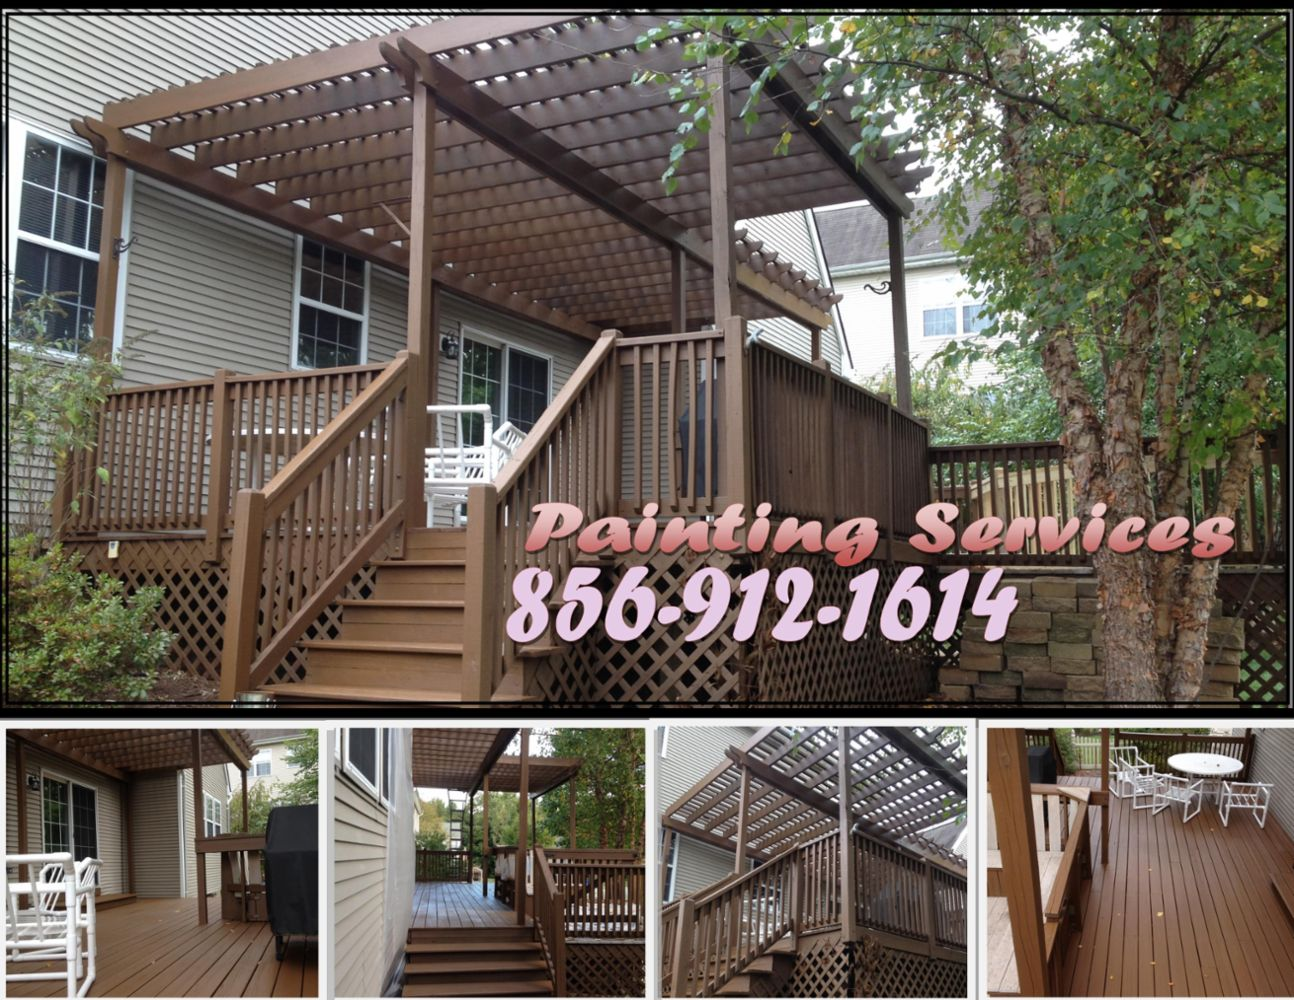 South Jersey House Painting Since 1997 In Marlton Nj